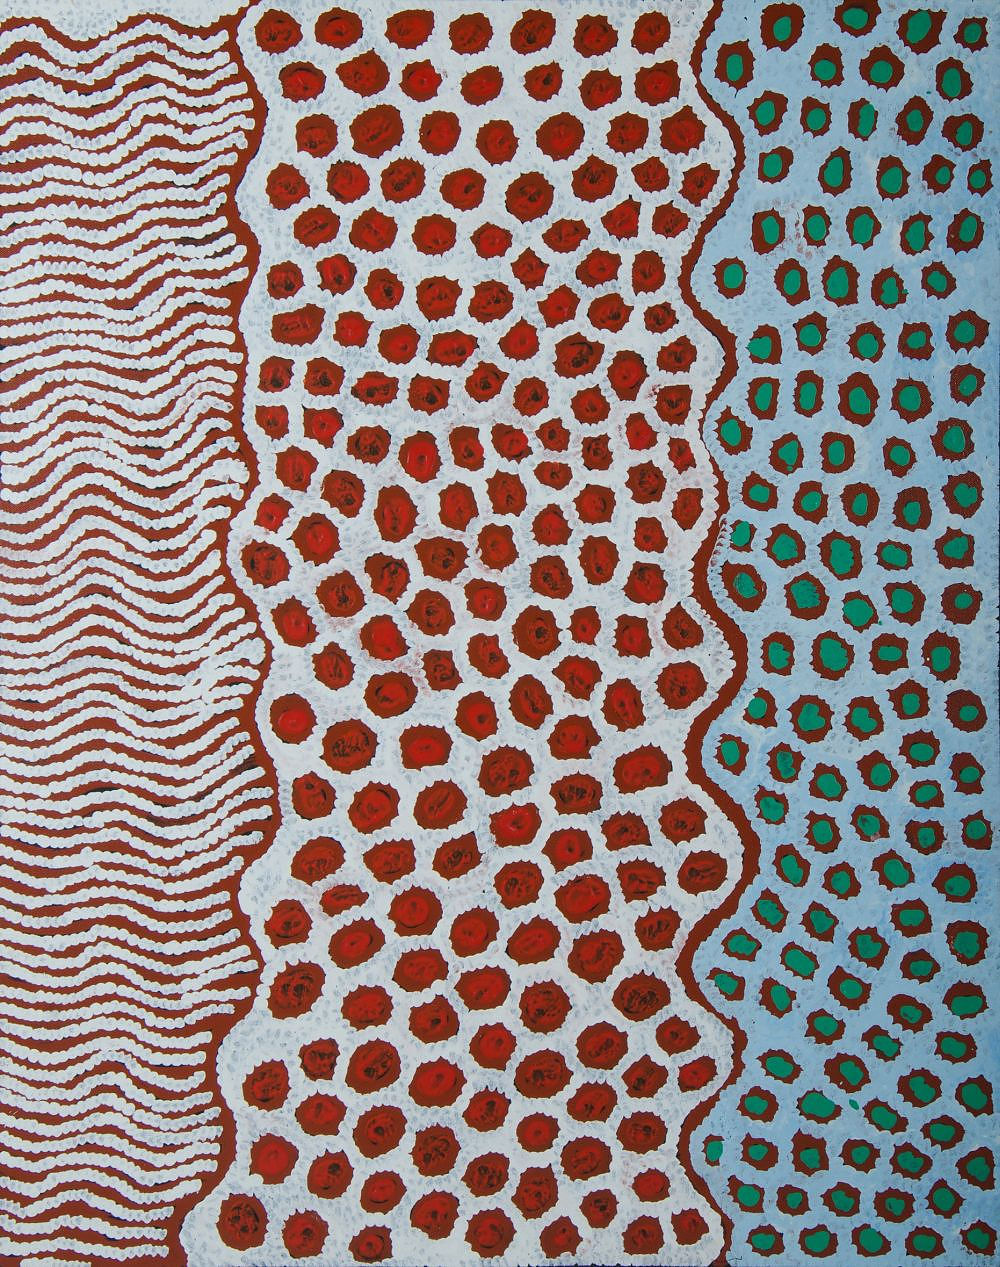 'NAPALJARRI, Susan Gibson (b.1972) Womens Ceremony, 2015. Stamp verso for Mimi Art Gallery, cat 2641. Certificate of authenticity available Acrylic on Linen'